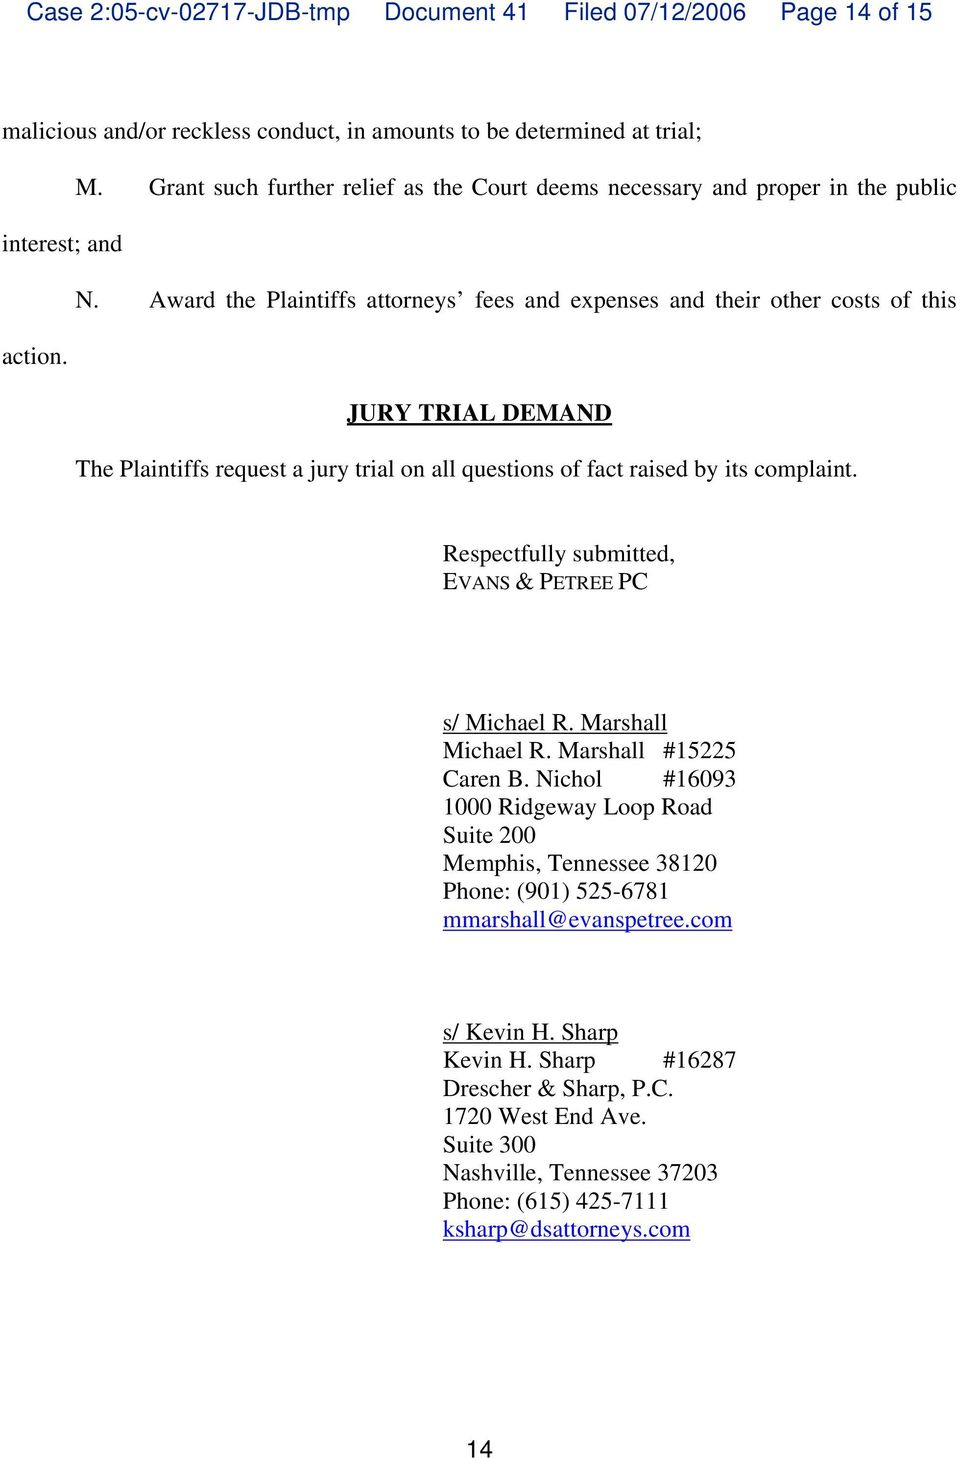 JURY TRIAL DEMAND The Plaintiffs request a jury trial on all questions of fact raised by its complaint. Respectfully submitted, EVANS & PETREE PC s/ Michael R. Marshall Michael R.